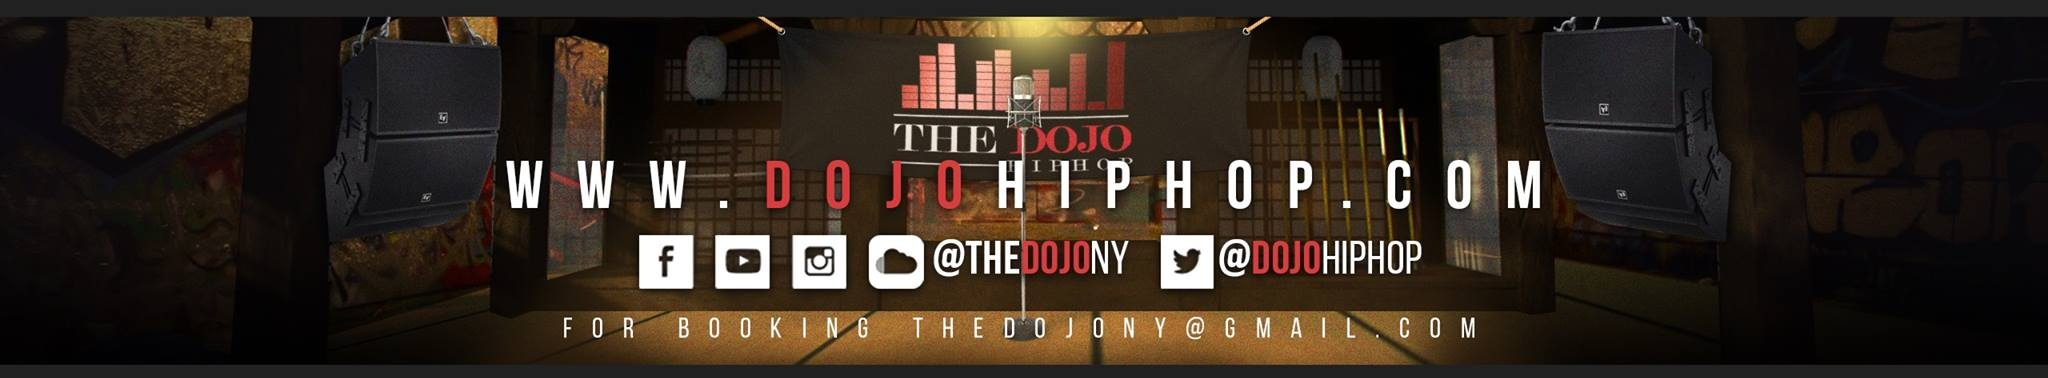 The Dojo Hiphop